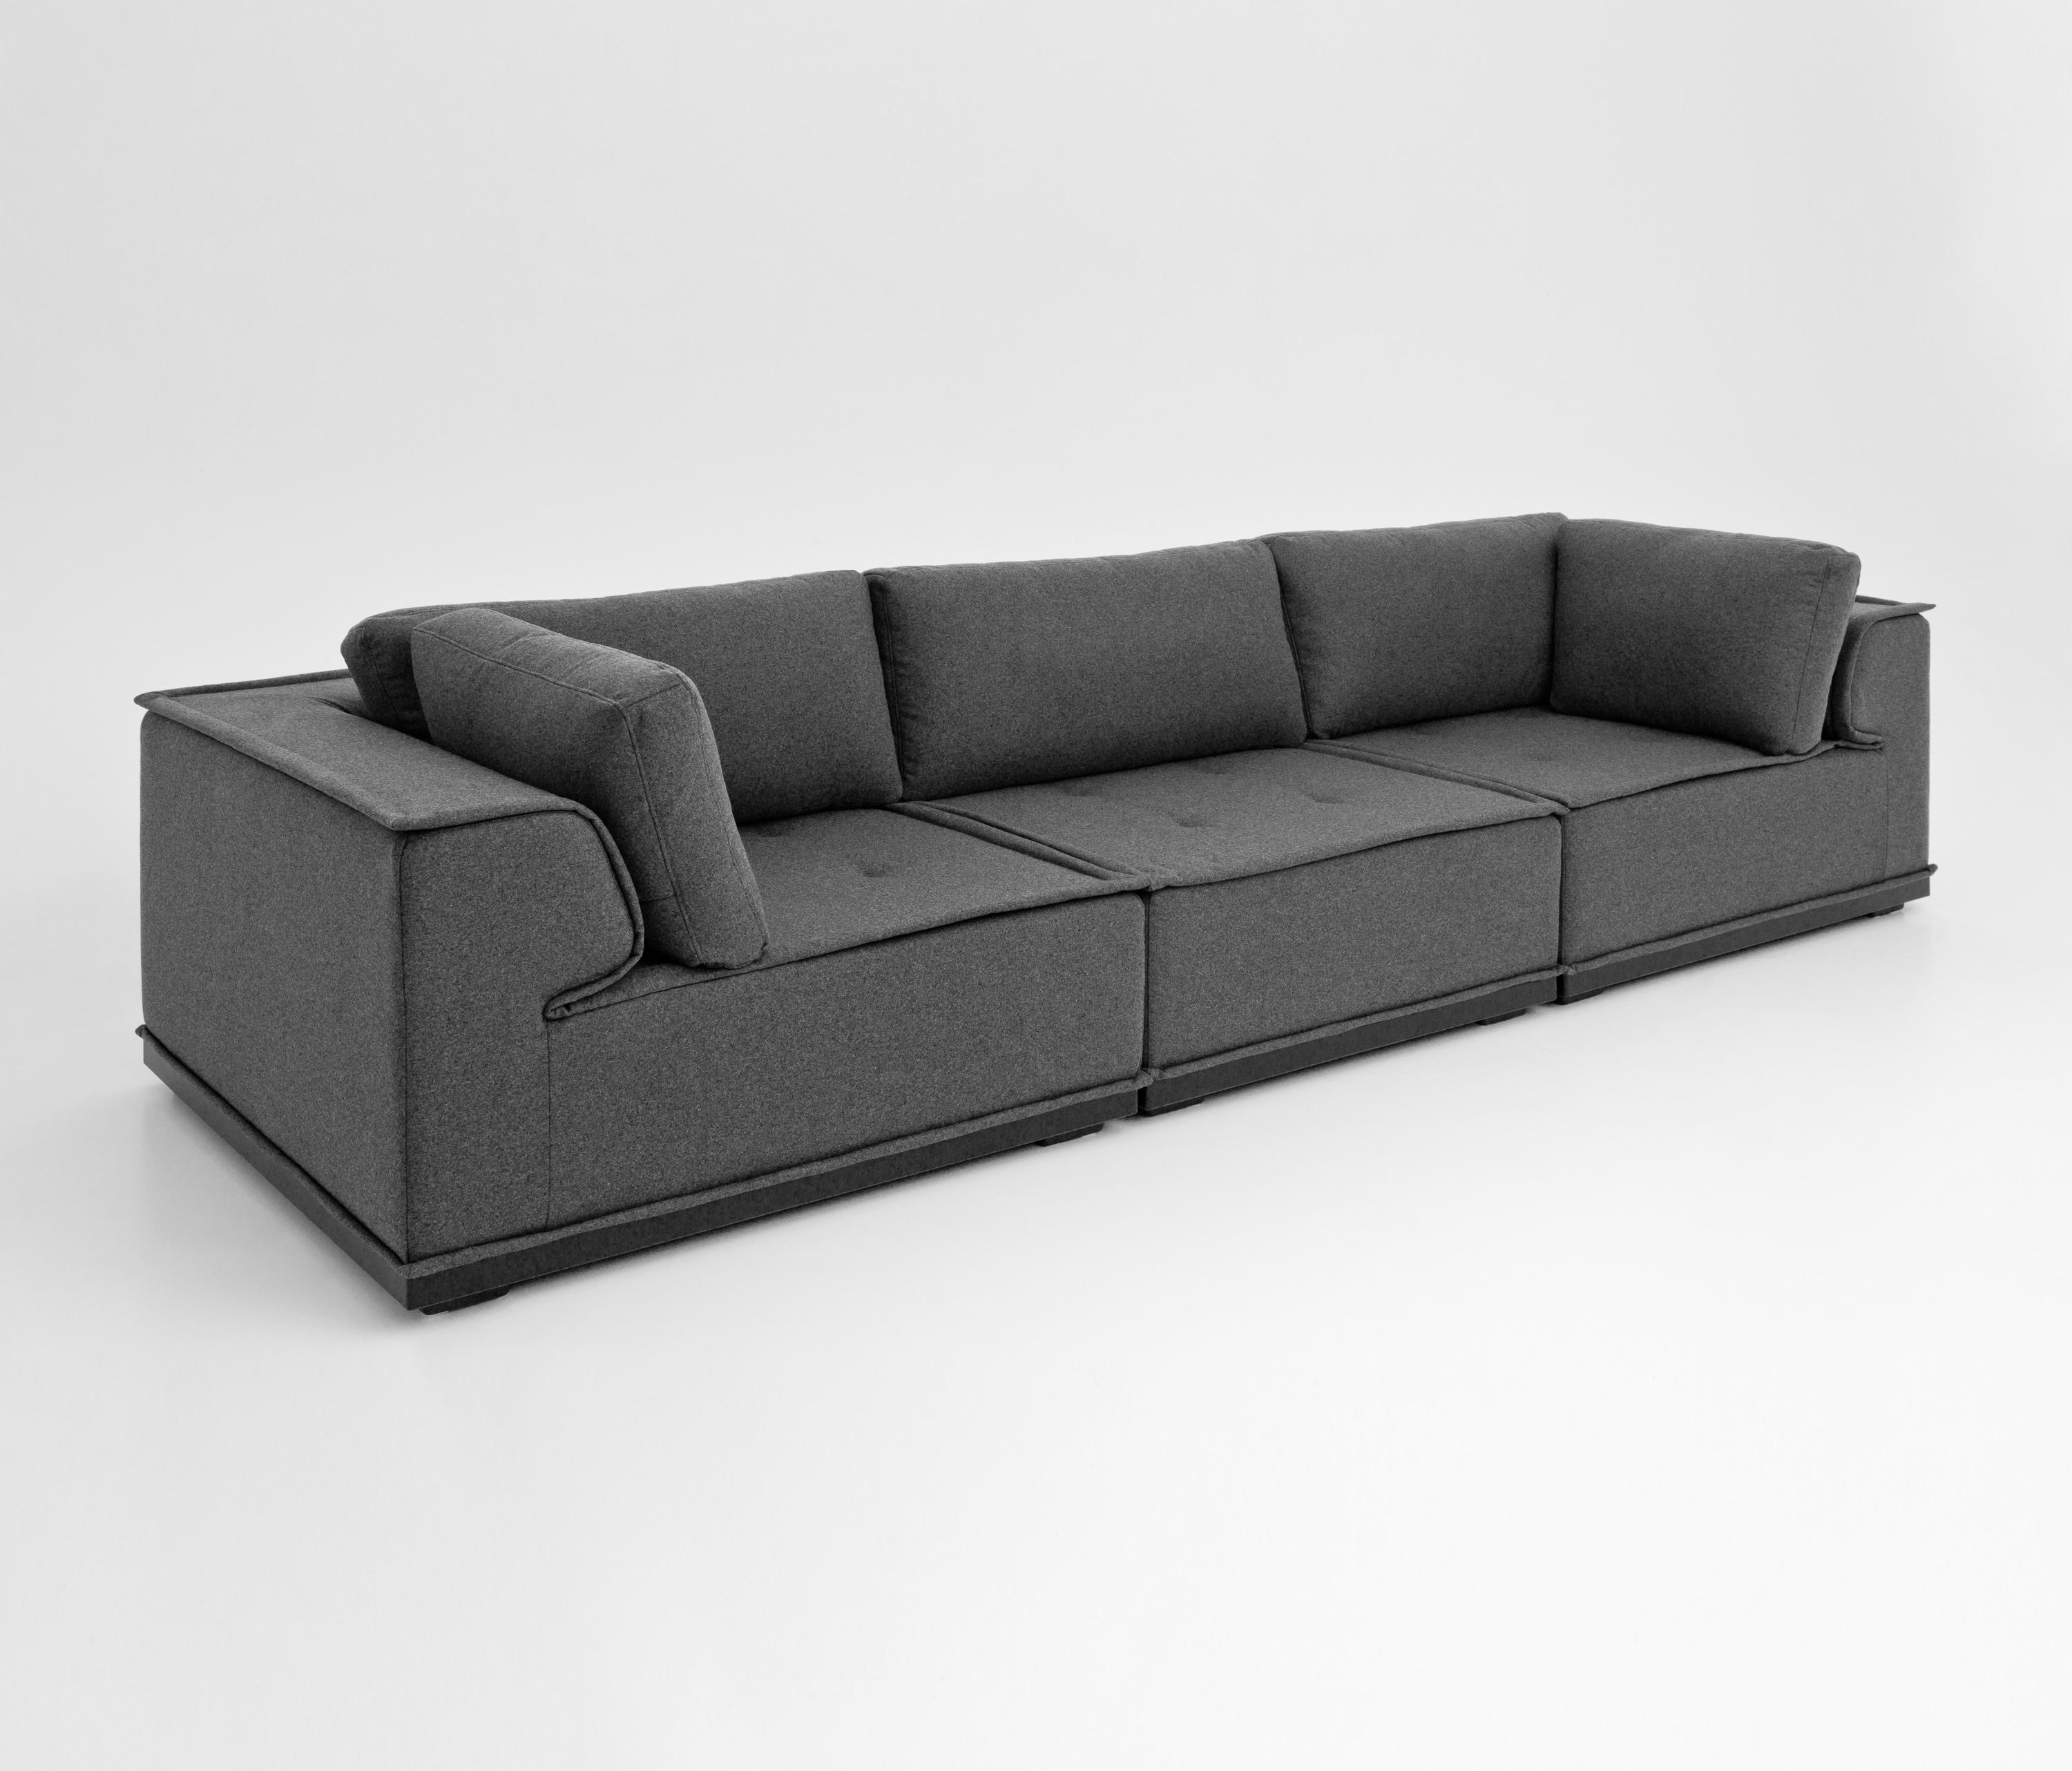 napo sofa loungesofas von comforty architonic. Black Bedroom Furniture Sets. Home Design Ideas